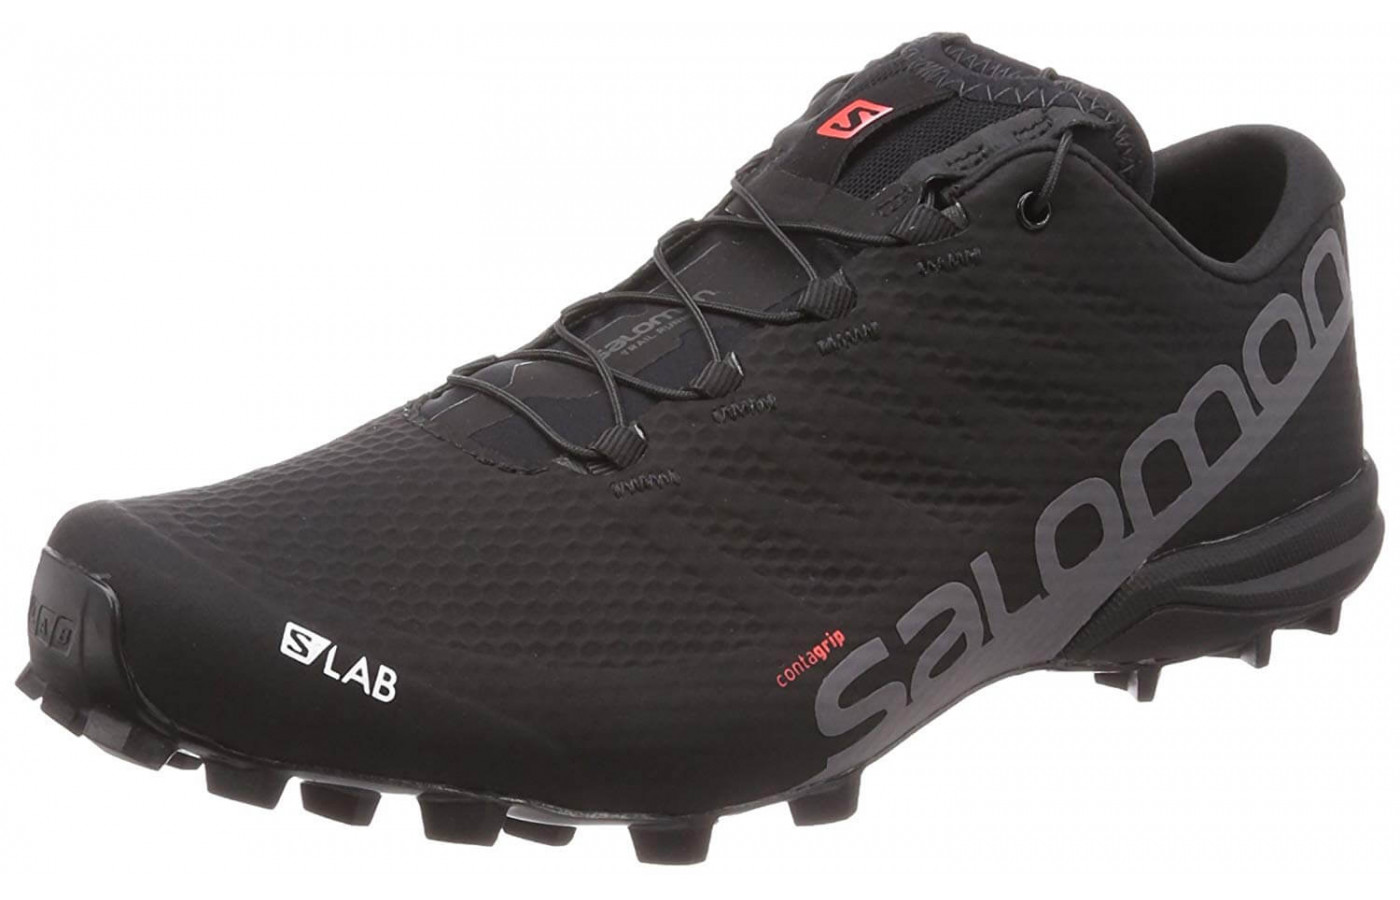 The S-Lab Speed 2 is only available in black.